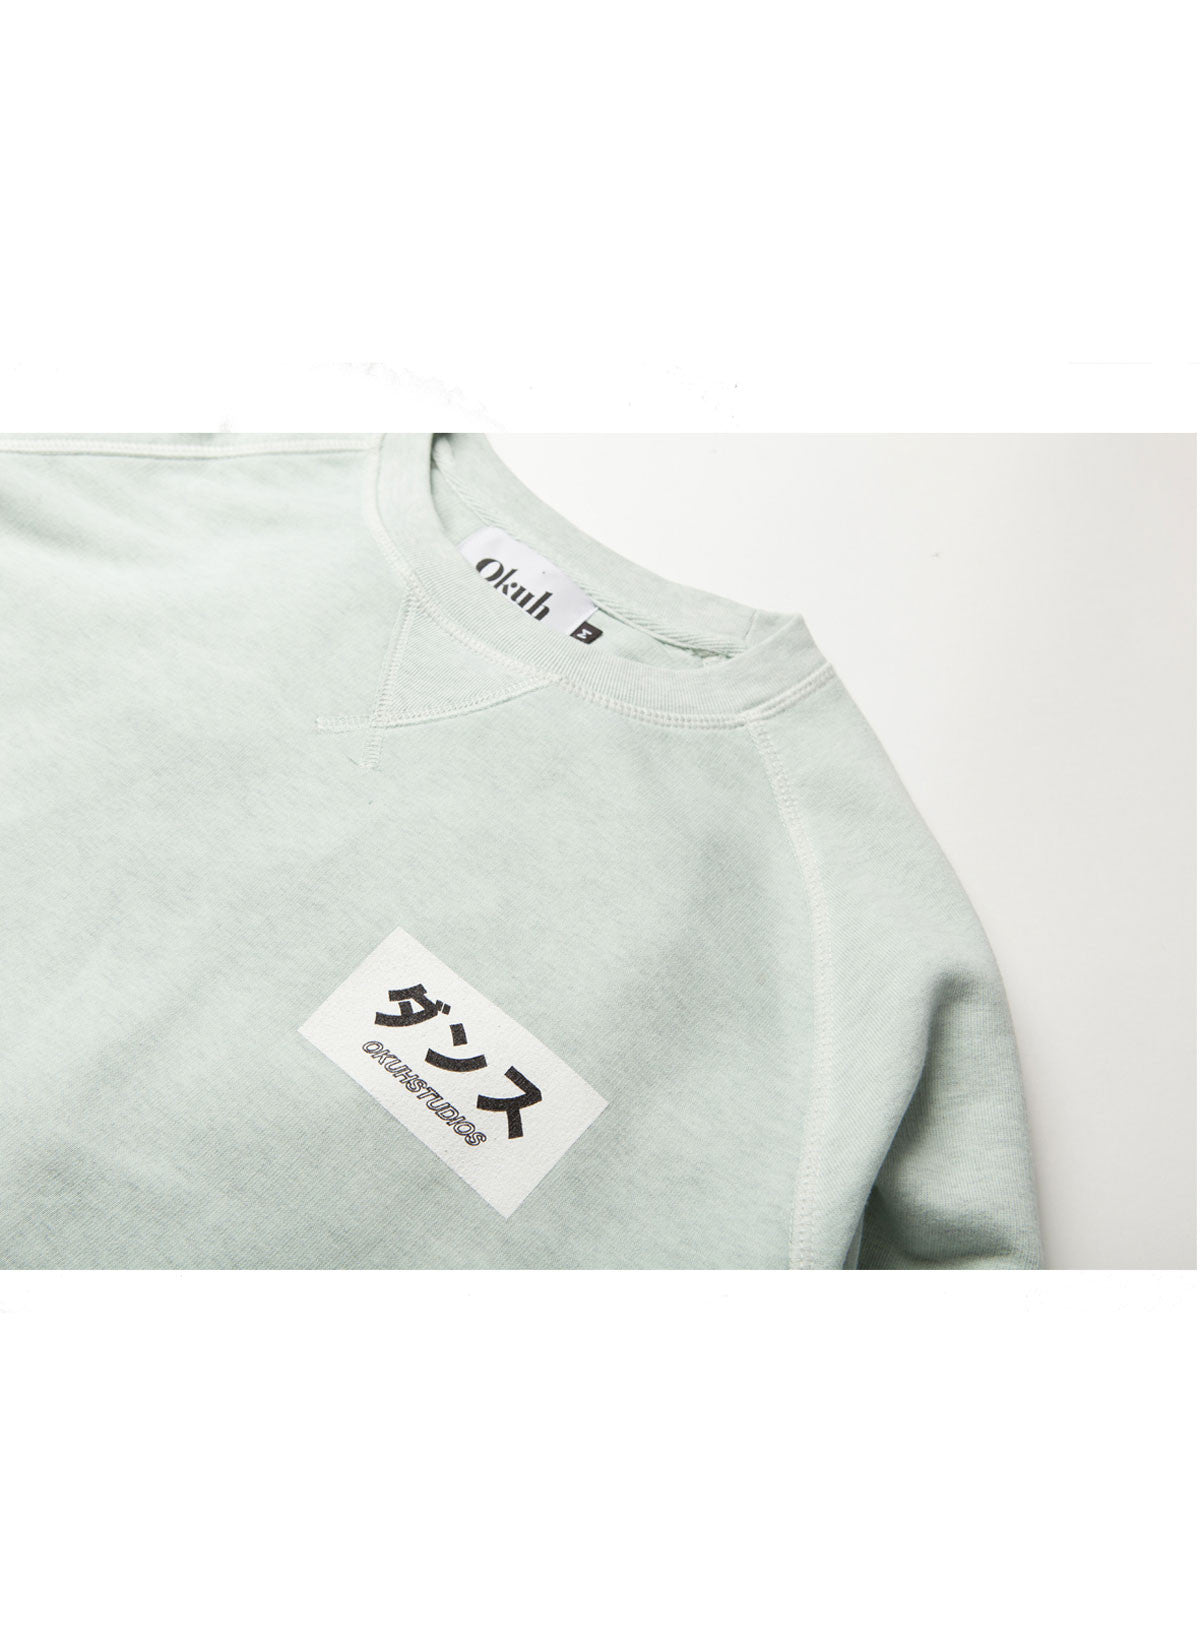 Mint Sphere Sweatshirt by Okuh Studios, mens streetwear fashion brand, front close up